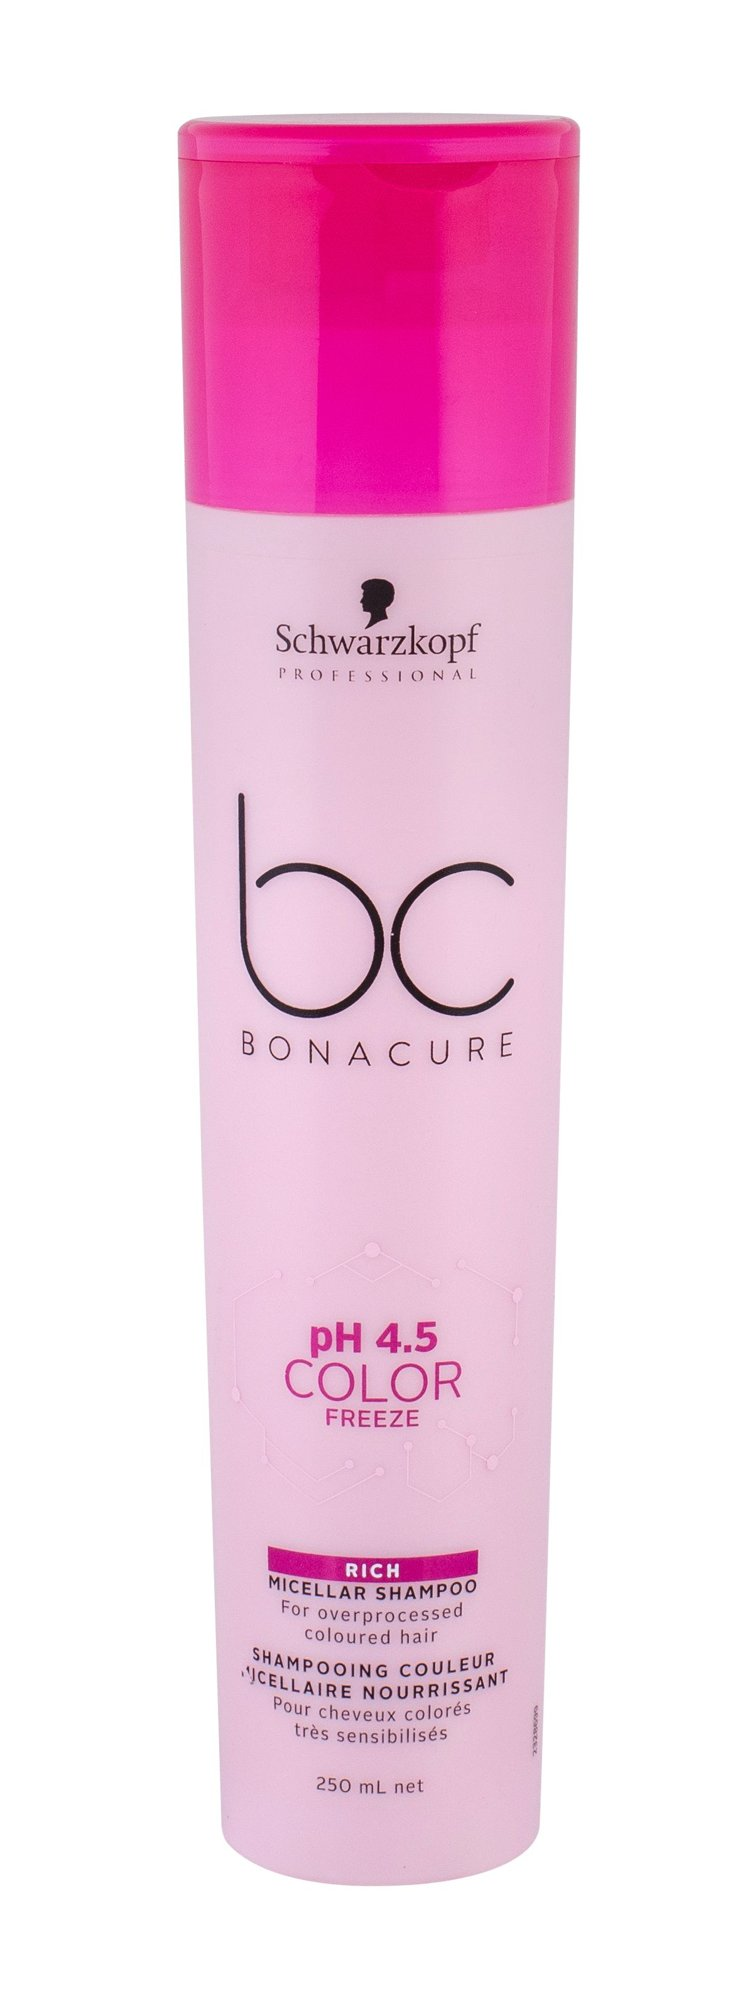 Schwarzkopf BC Bonacure pH 4.5 Color Freeze Shampoo 250ml